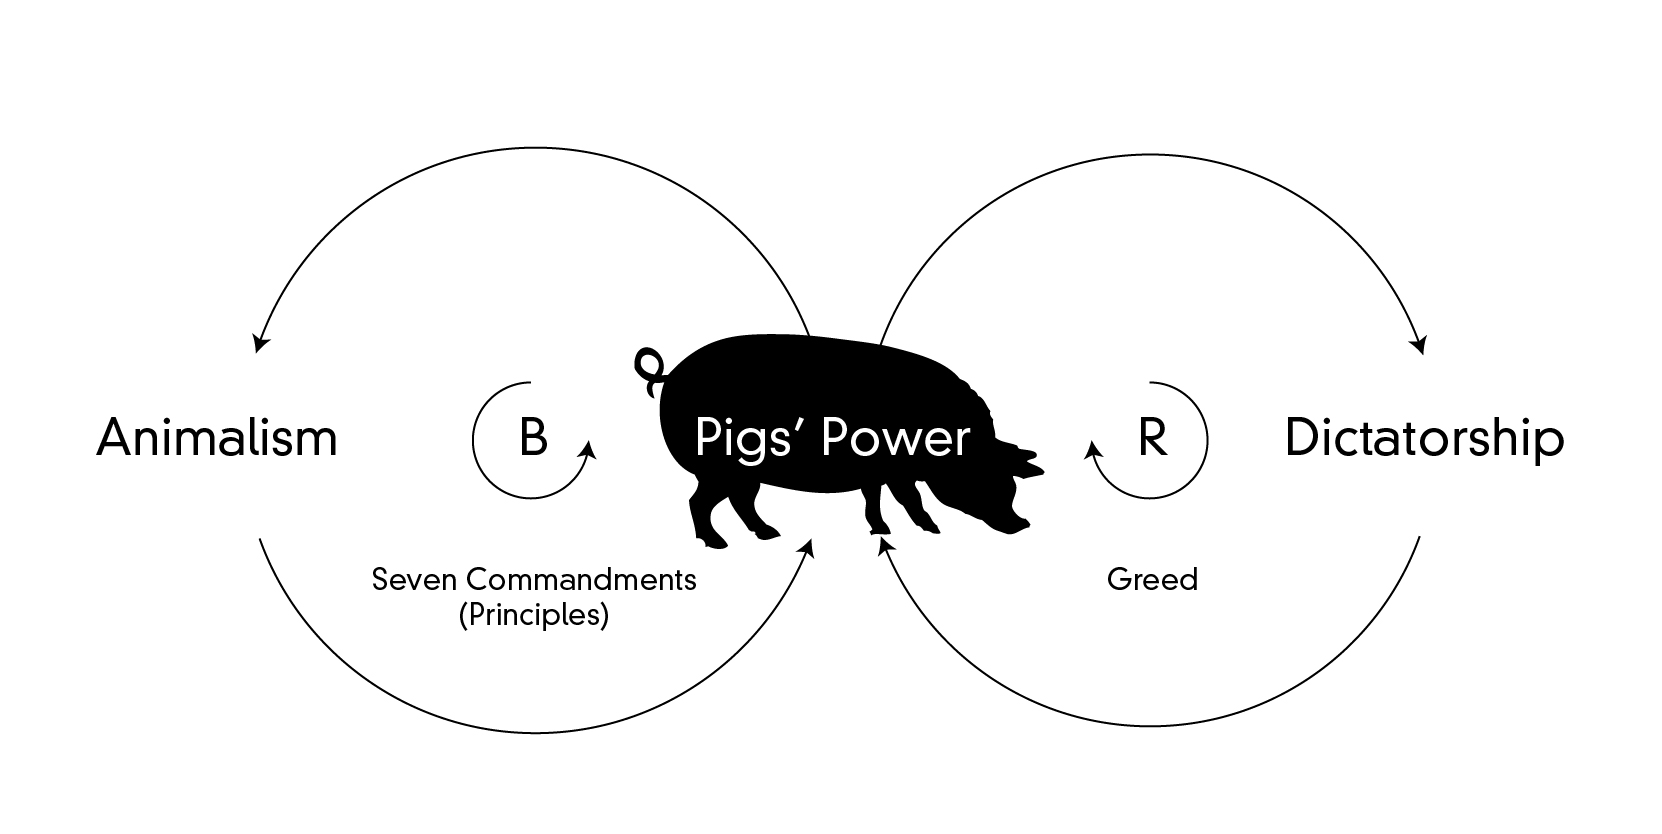 Cybernetics Systemic Dissection Of George Orwell S Animal